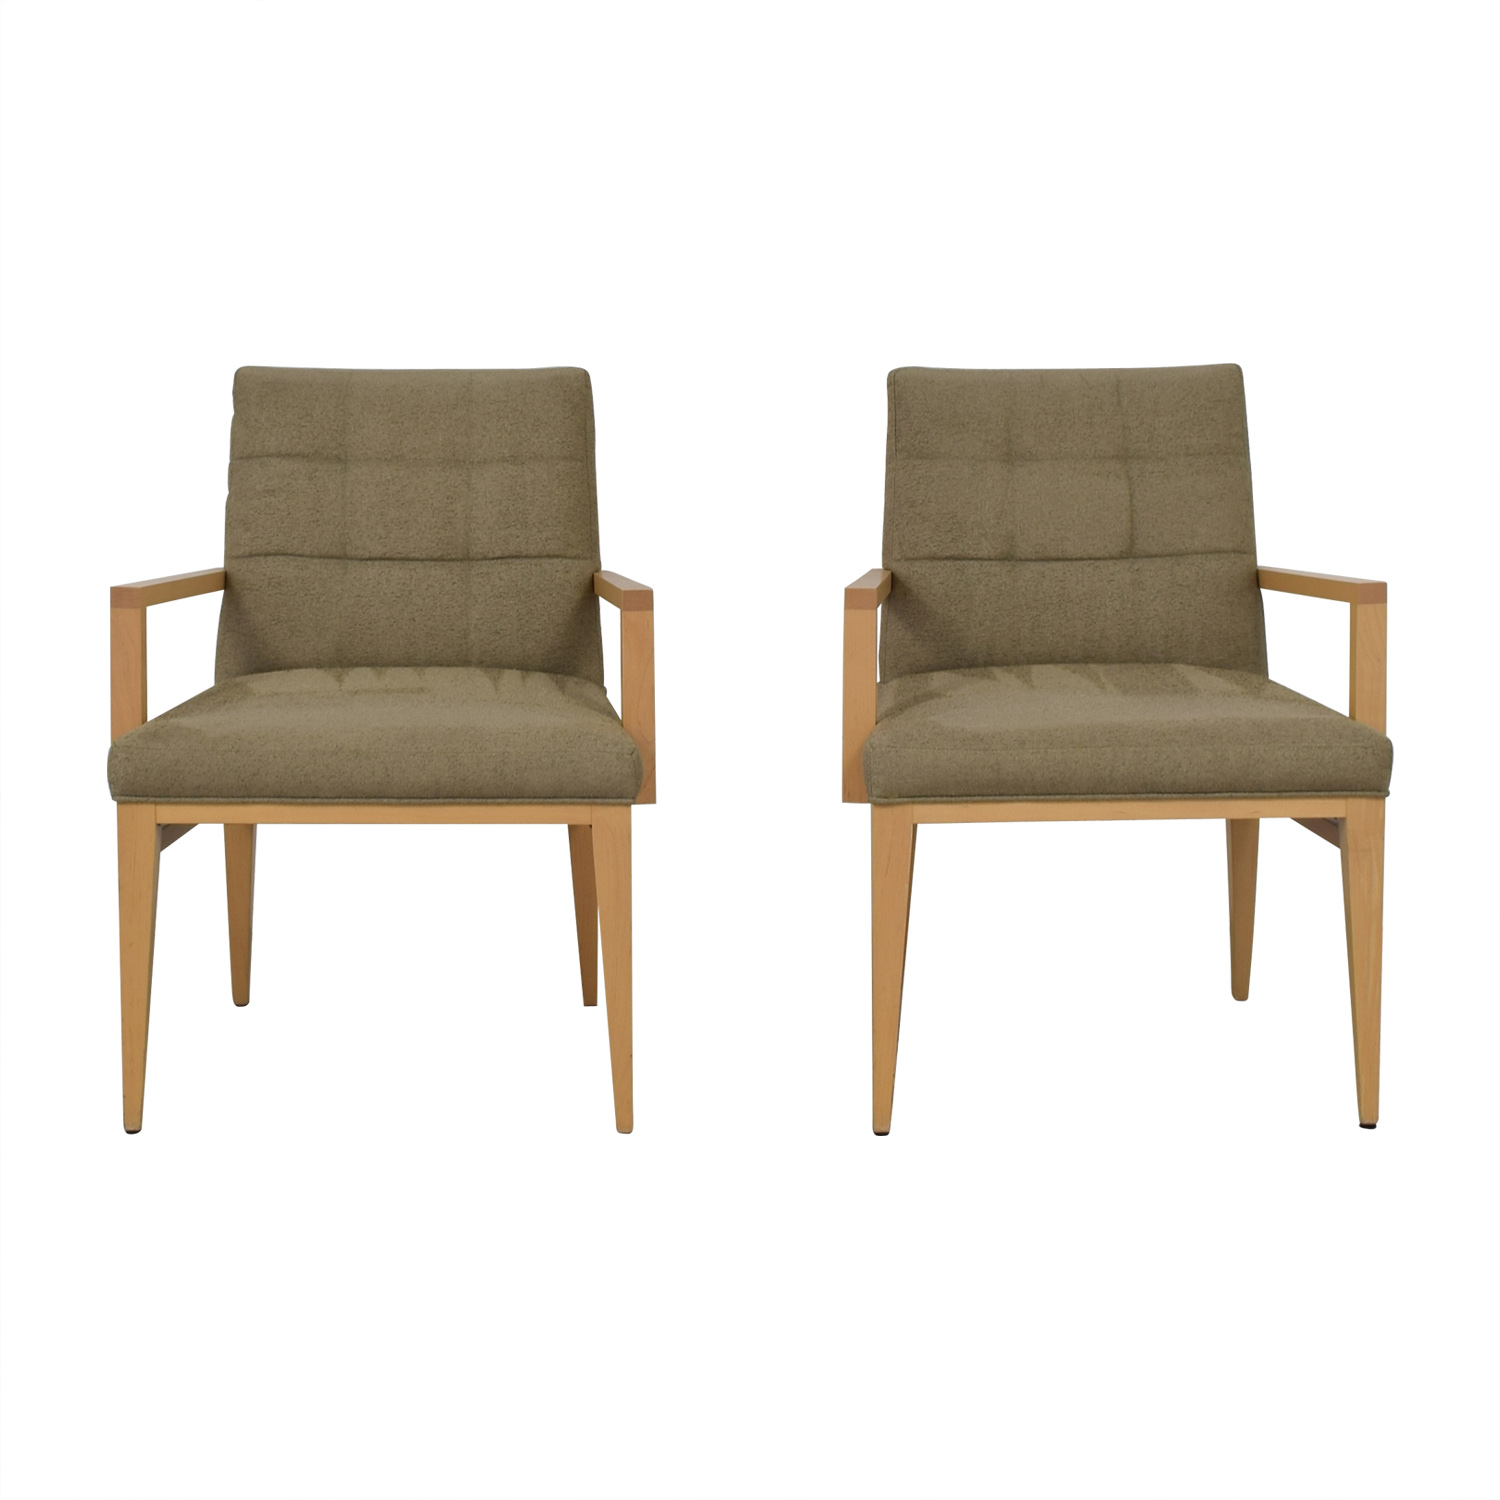 90 Off Hbf Hbf Newport Wood And Fabric Arm Chairs Chairs